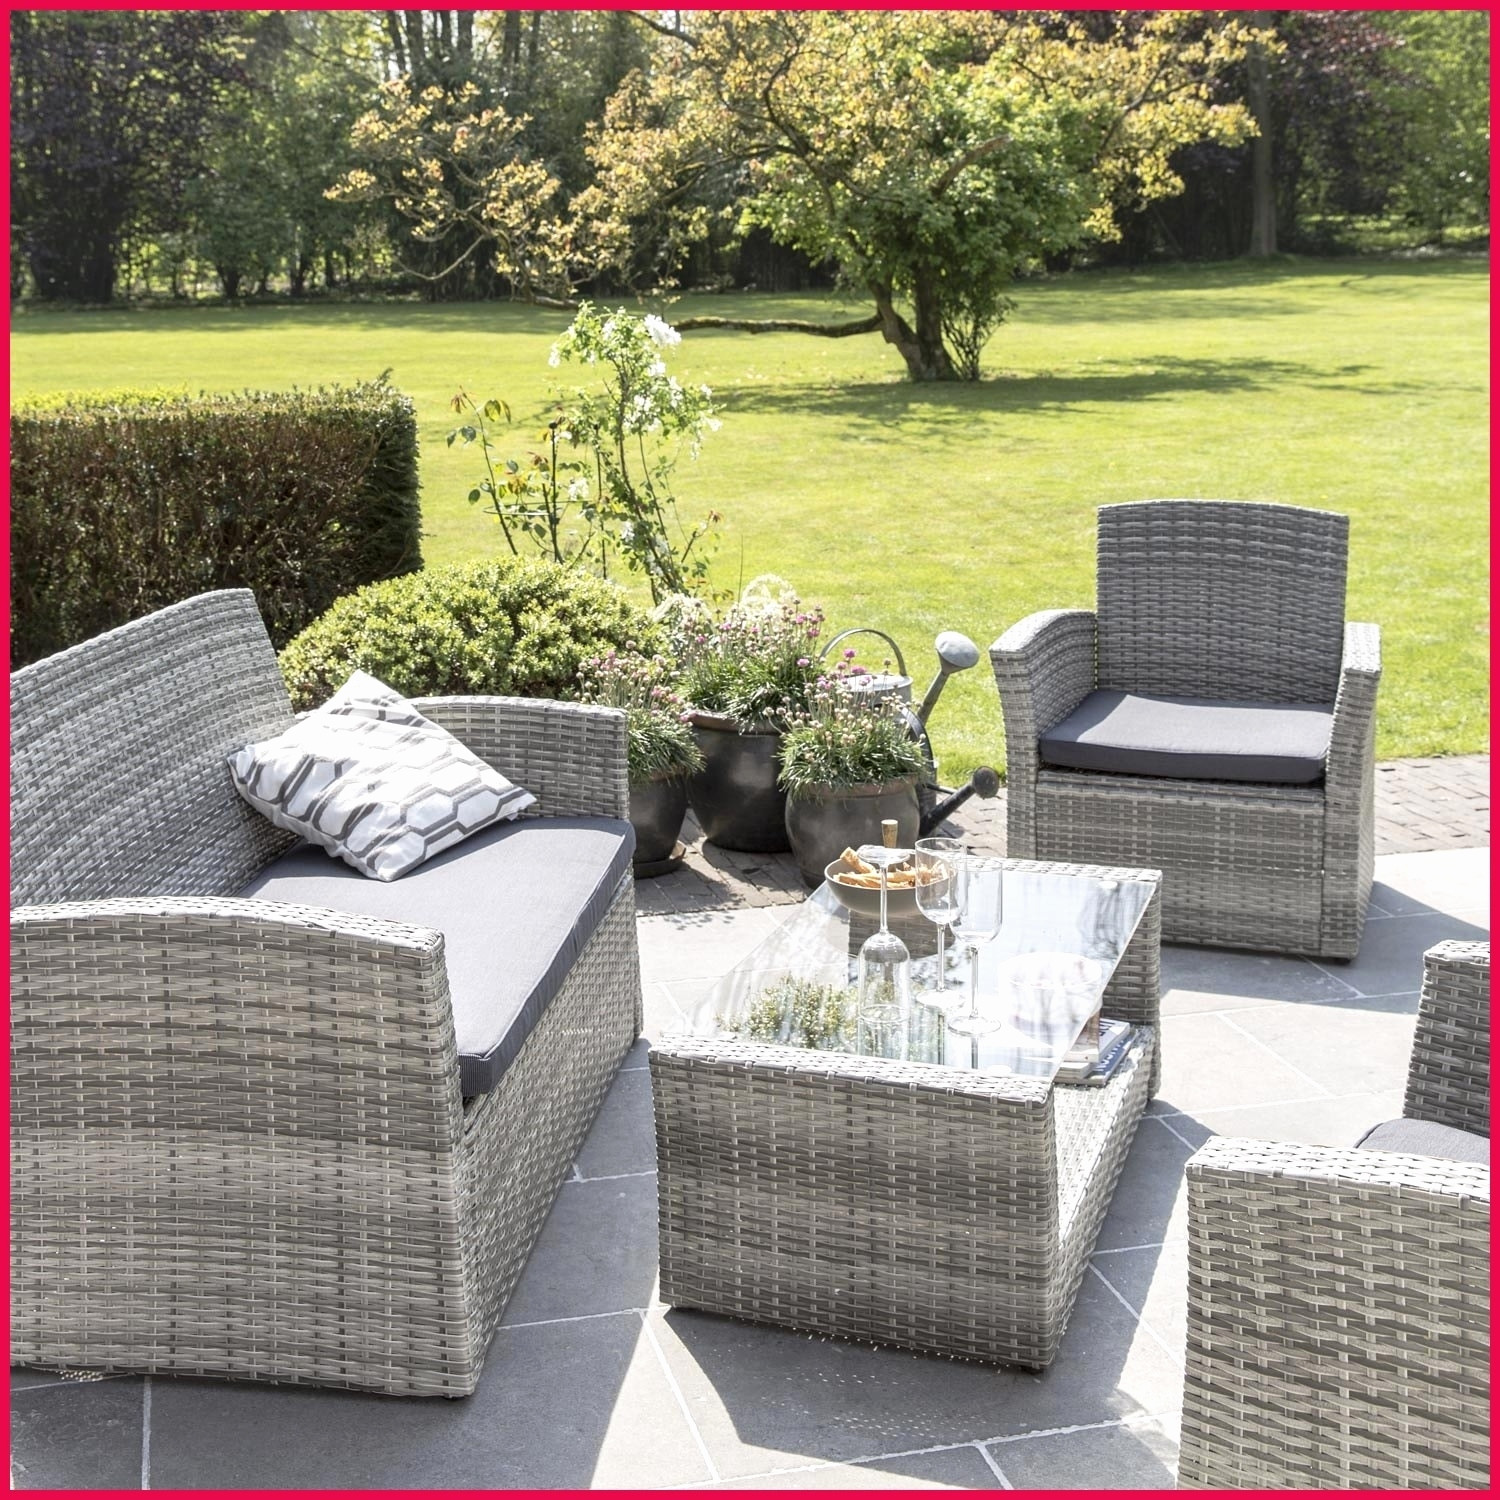 Salon Jardin Osier Luxe Beautiful Salon De Jardin En Rotin Le Bon Coin Of 21 Charmant Salon Jardin Osier